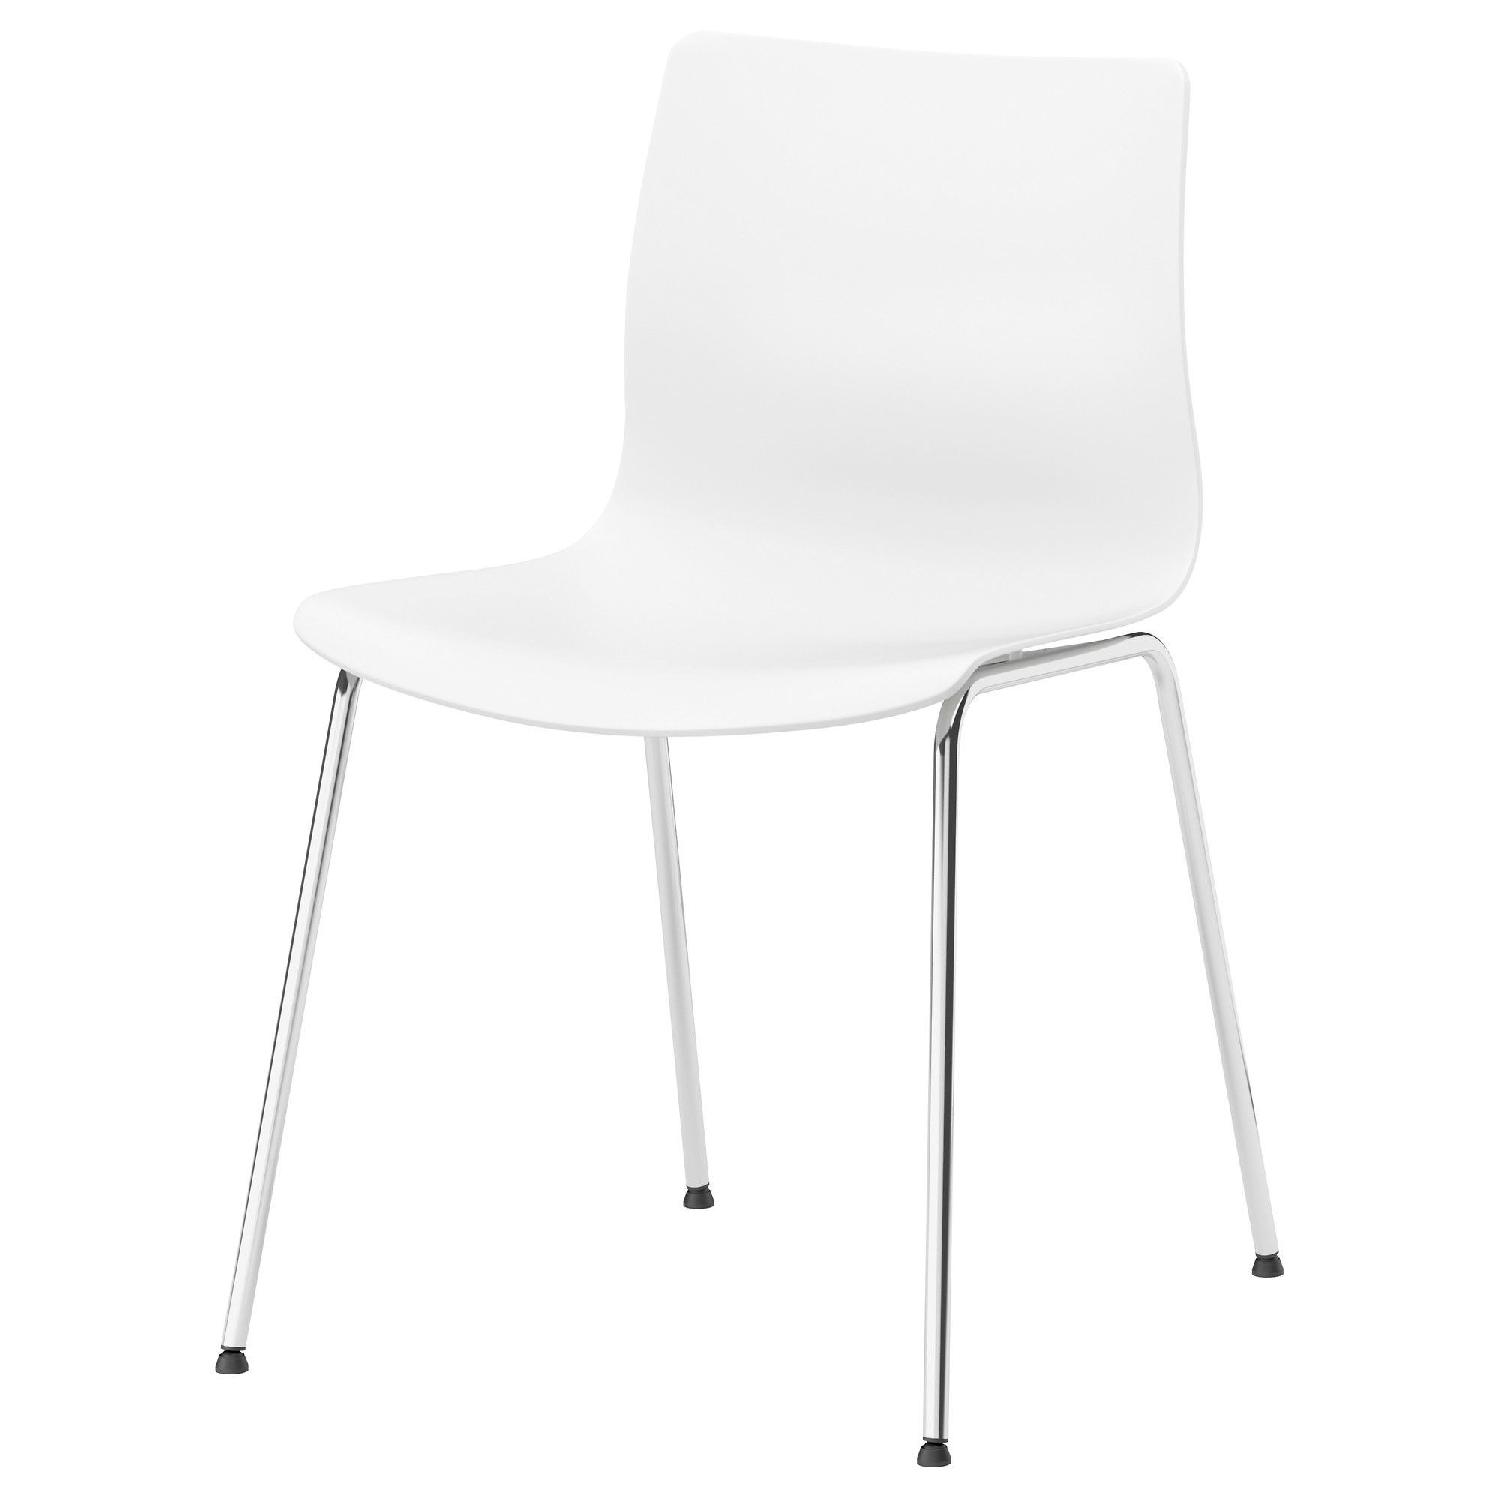 Ikea White Dining Chairs - image-0